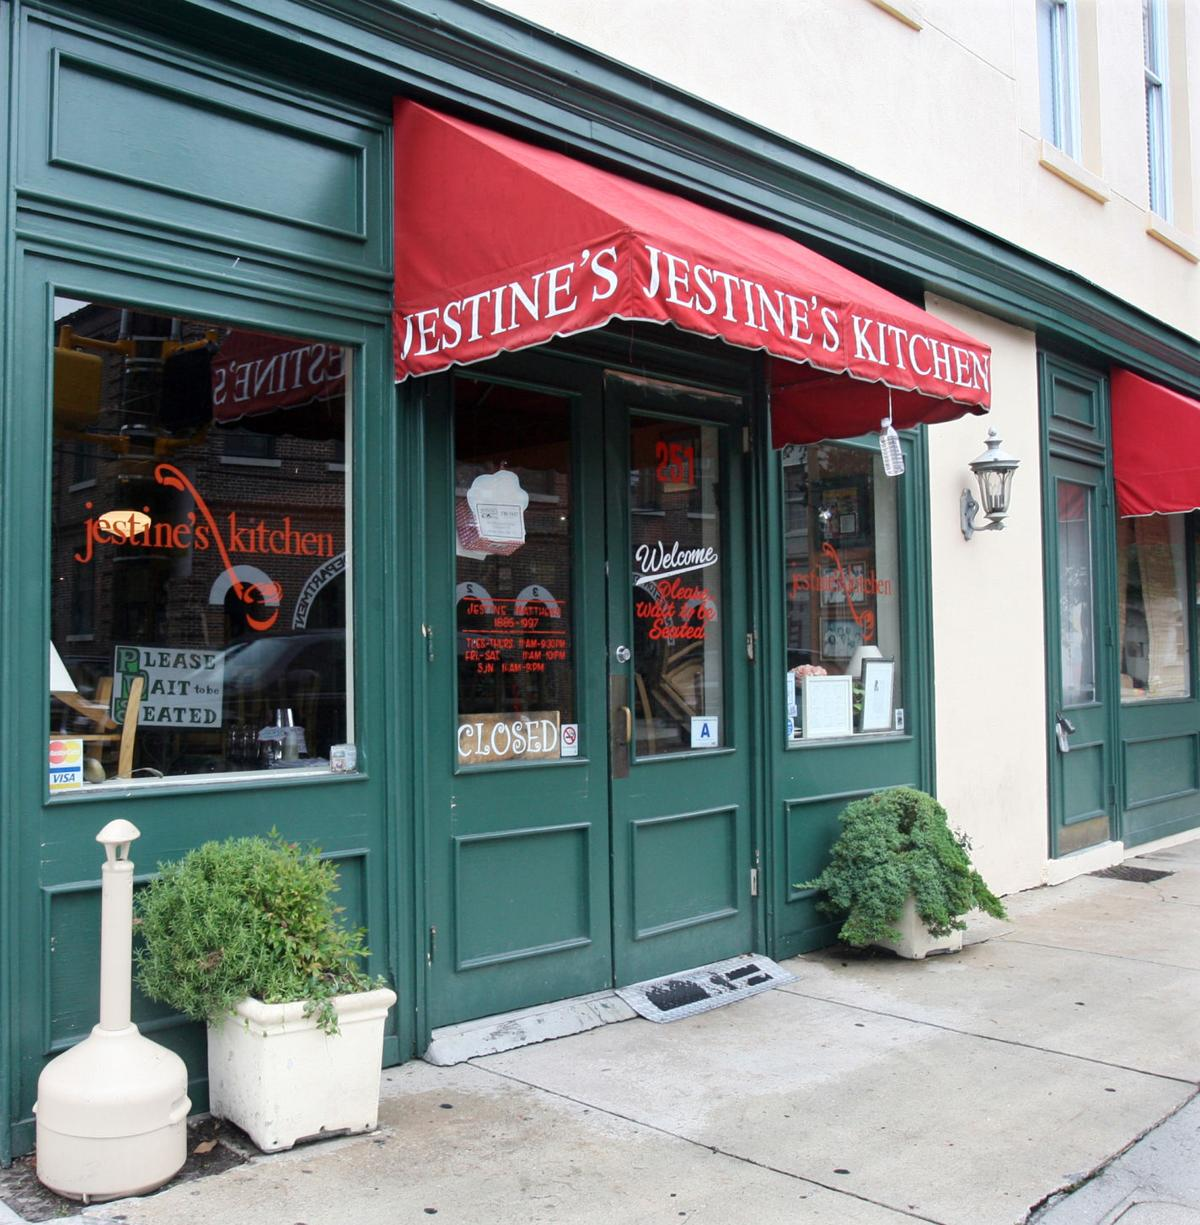 Jestine's Kitchen to reopen today